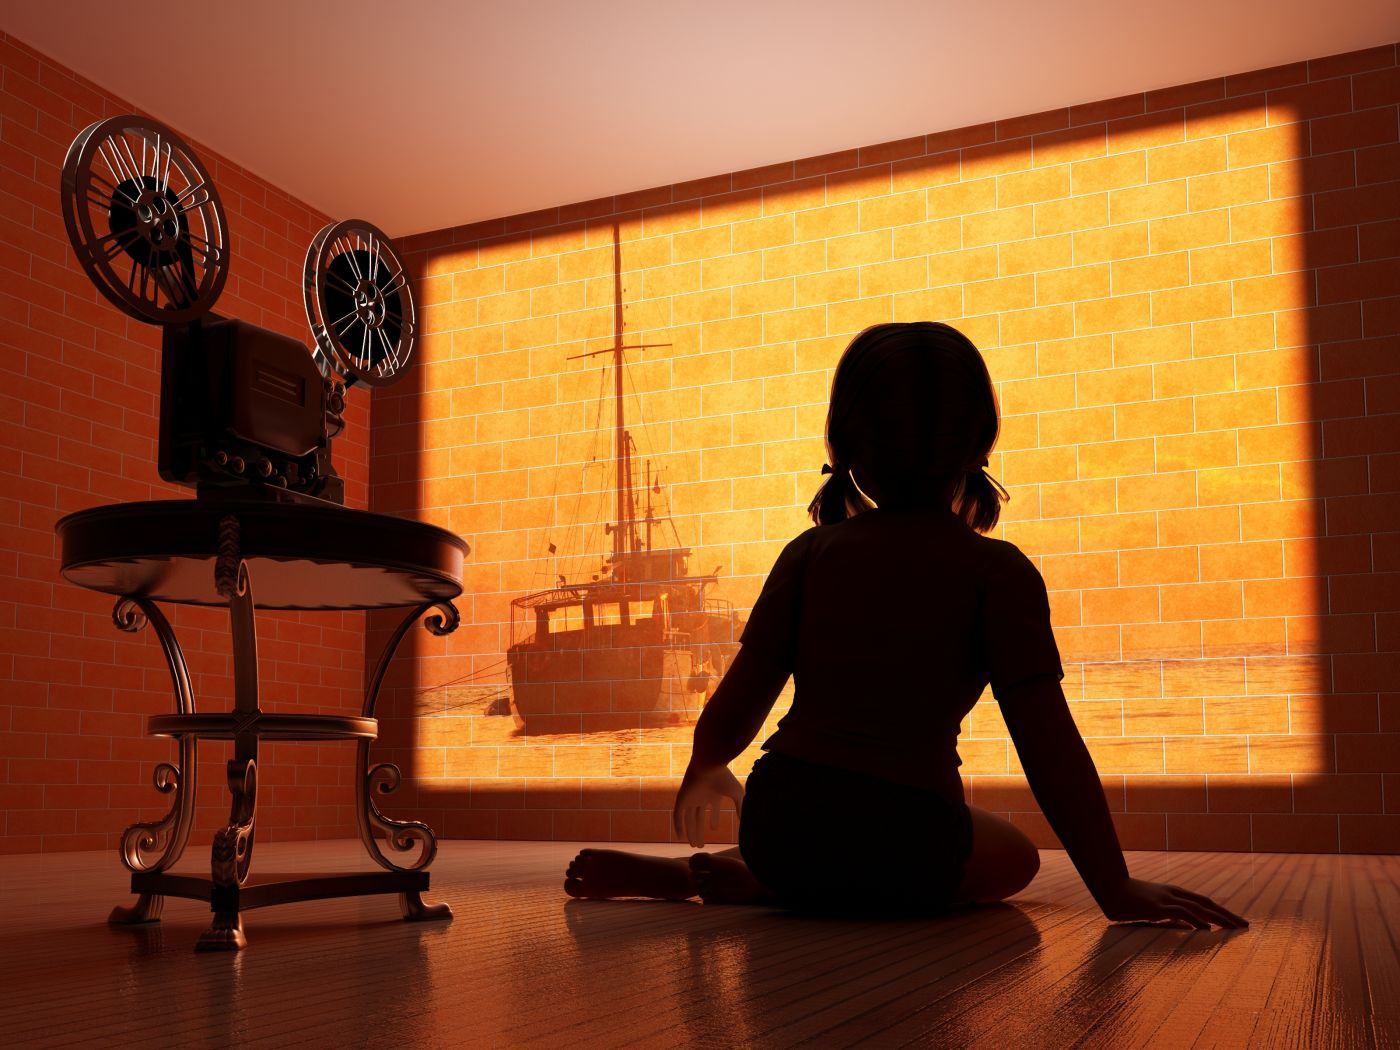 Silhouette of a child outside the movie camera.